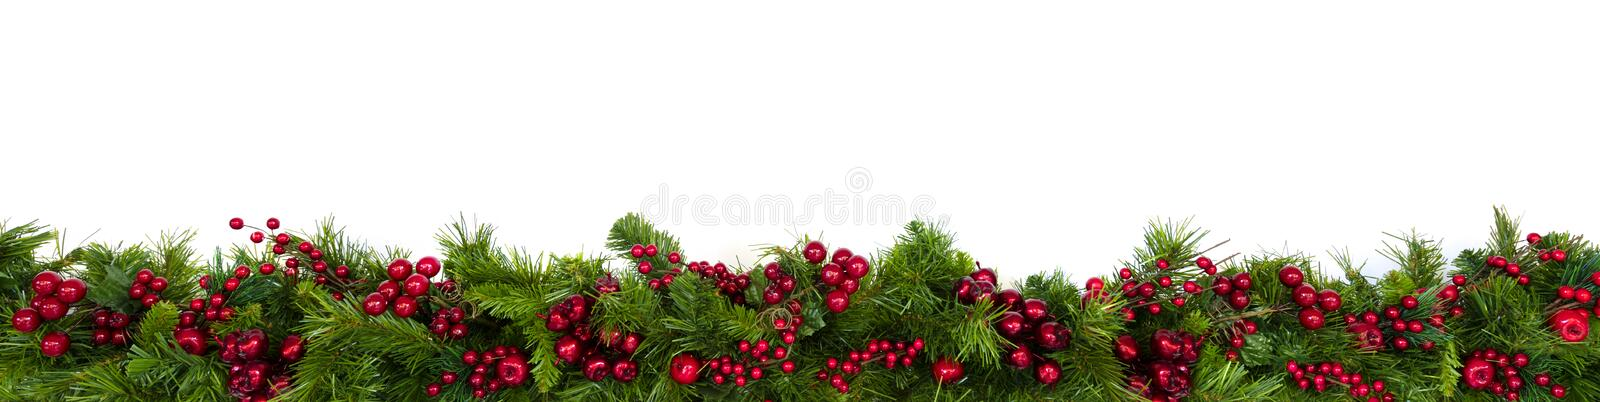 Christmas Garland Border with Red Berries Over White royalty free stock image